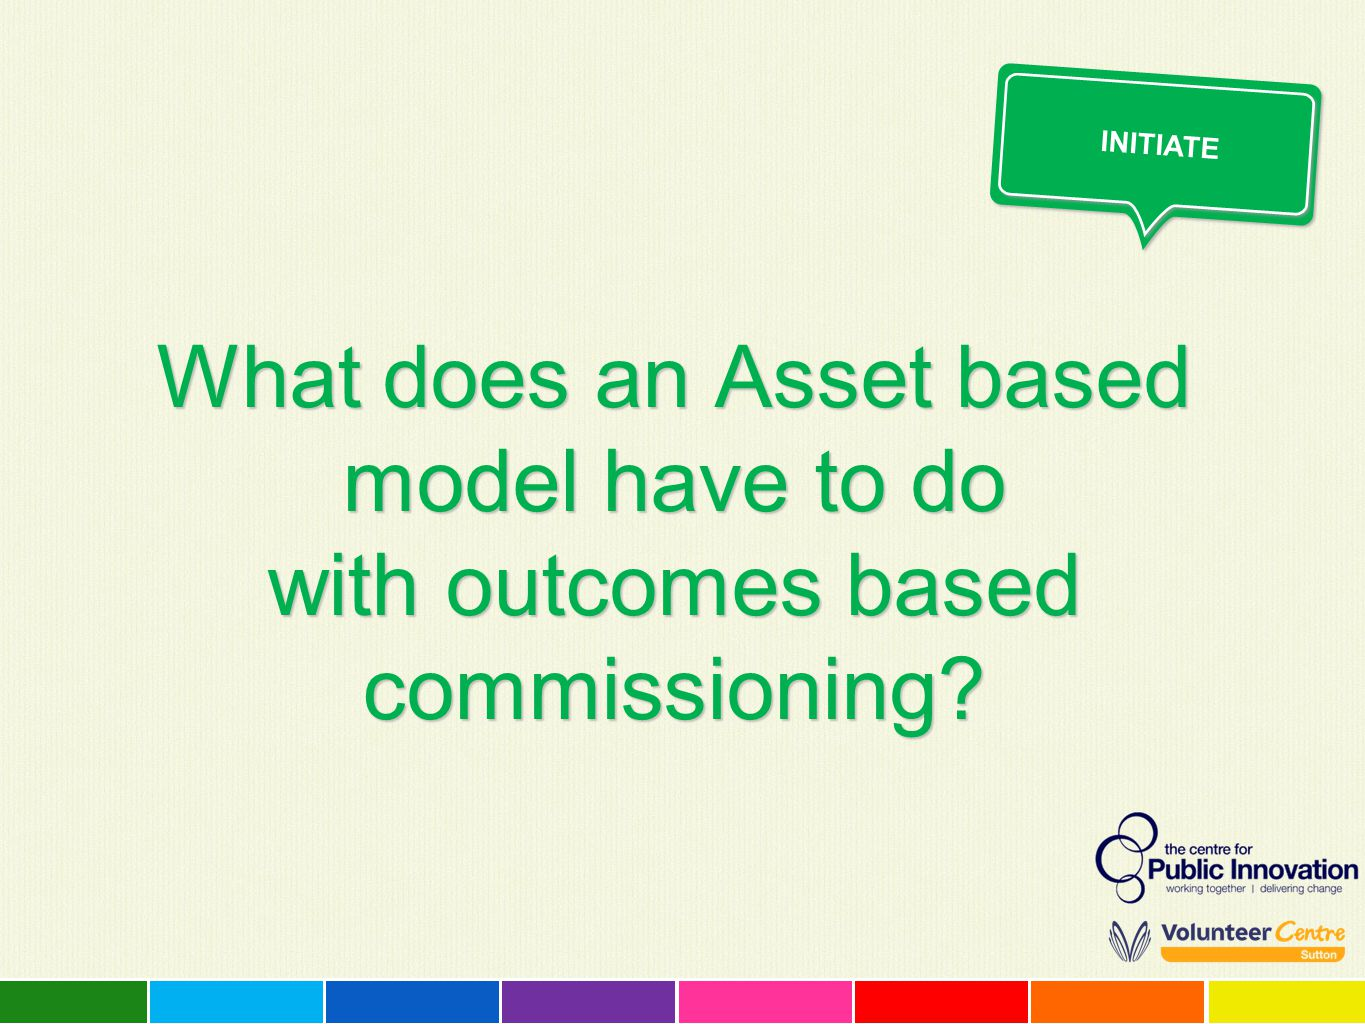 What does an Asset based model have to do with outcomes based commissioning? INITIATE